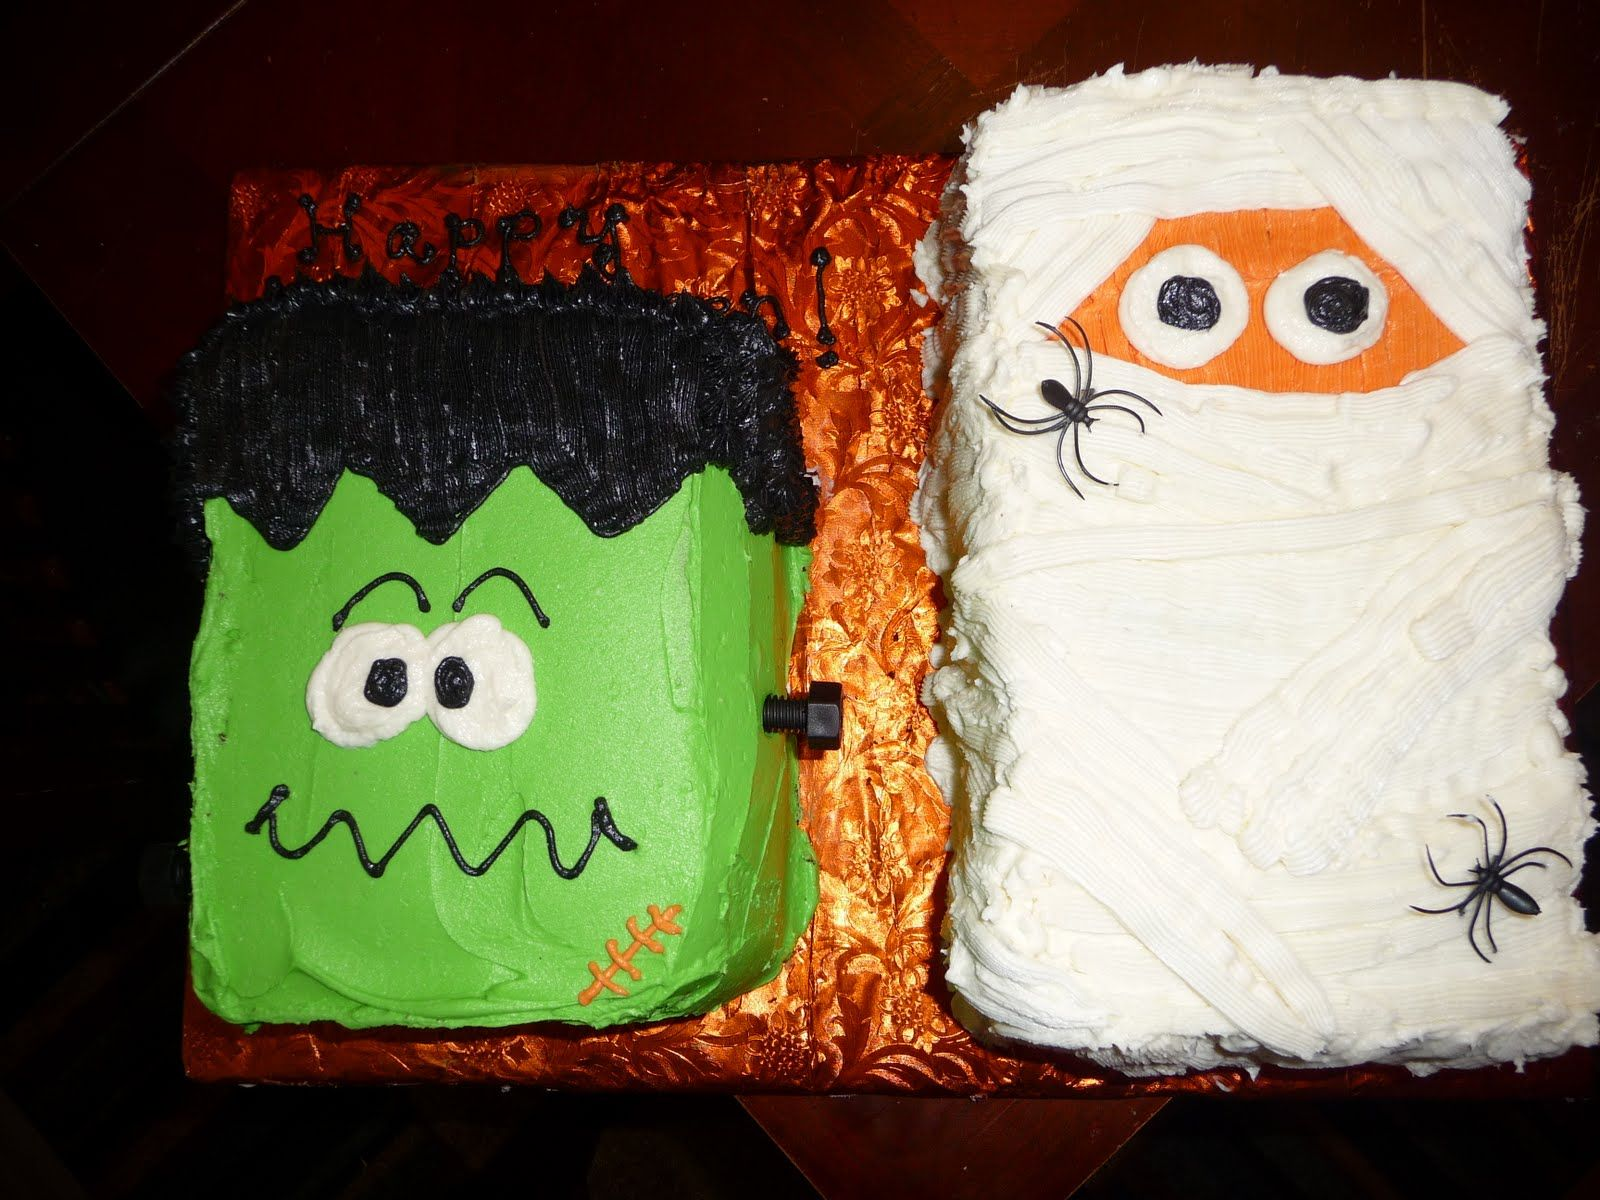 easy halloween cake ideas made these super easy halloween cakes yesterday for a halloween party halloween decorating - Easy Halloween Cake Decorating Ideas